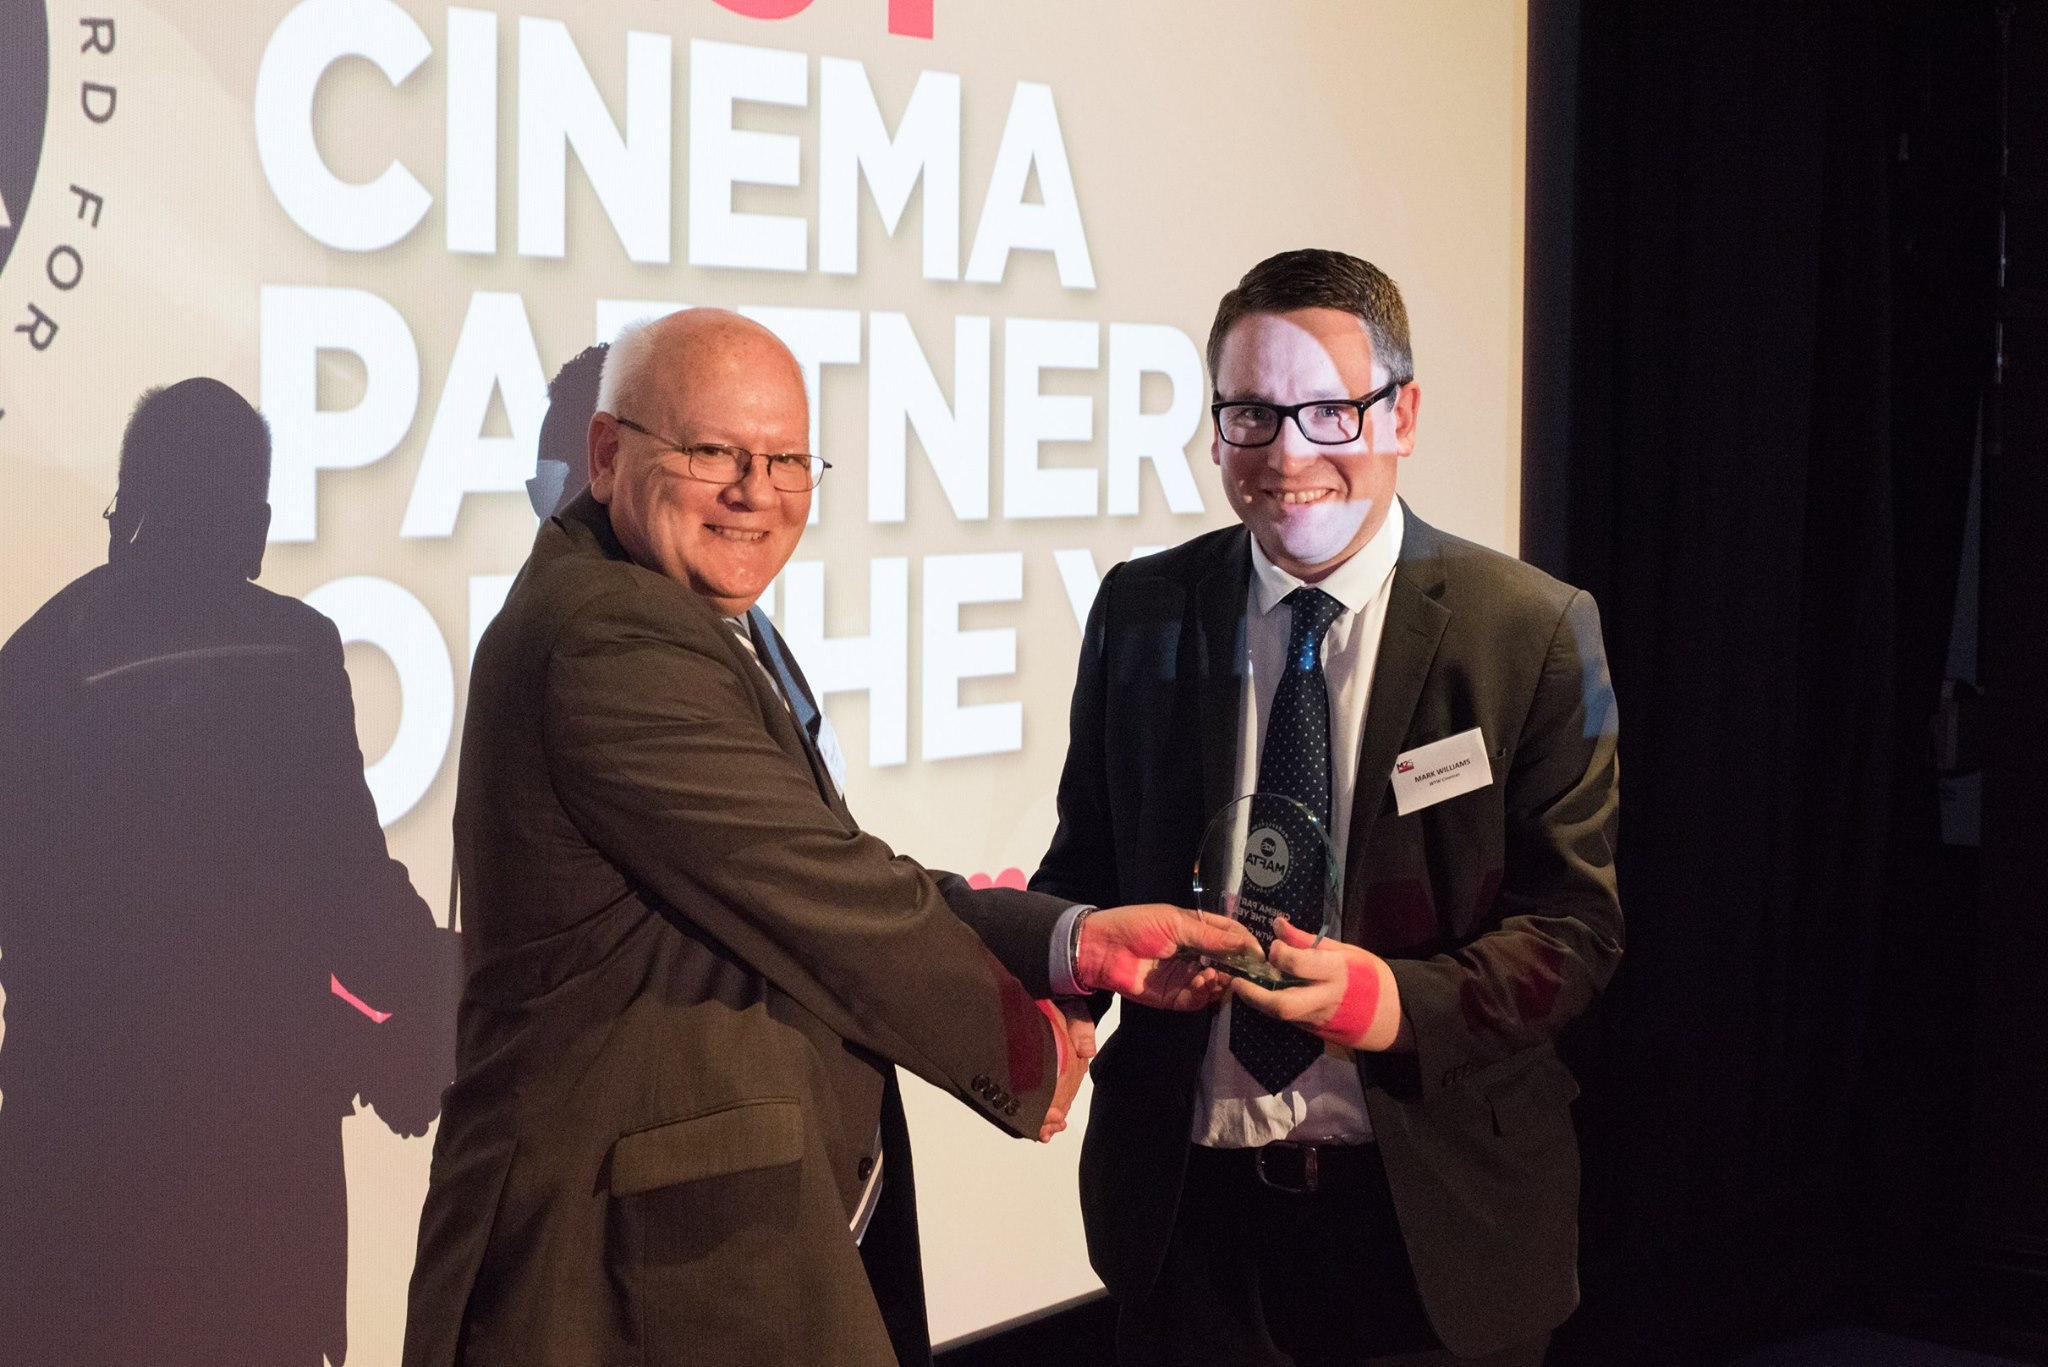 """WTW are awarded cinema partner of the year at More2Screen's """"Mafta's"""" recognising their commitment to the delivery of event cinema and live transmissions."""